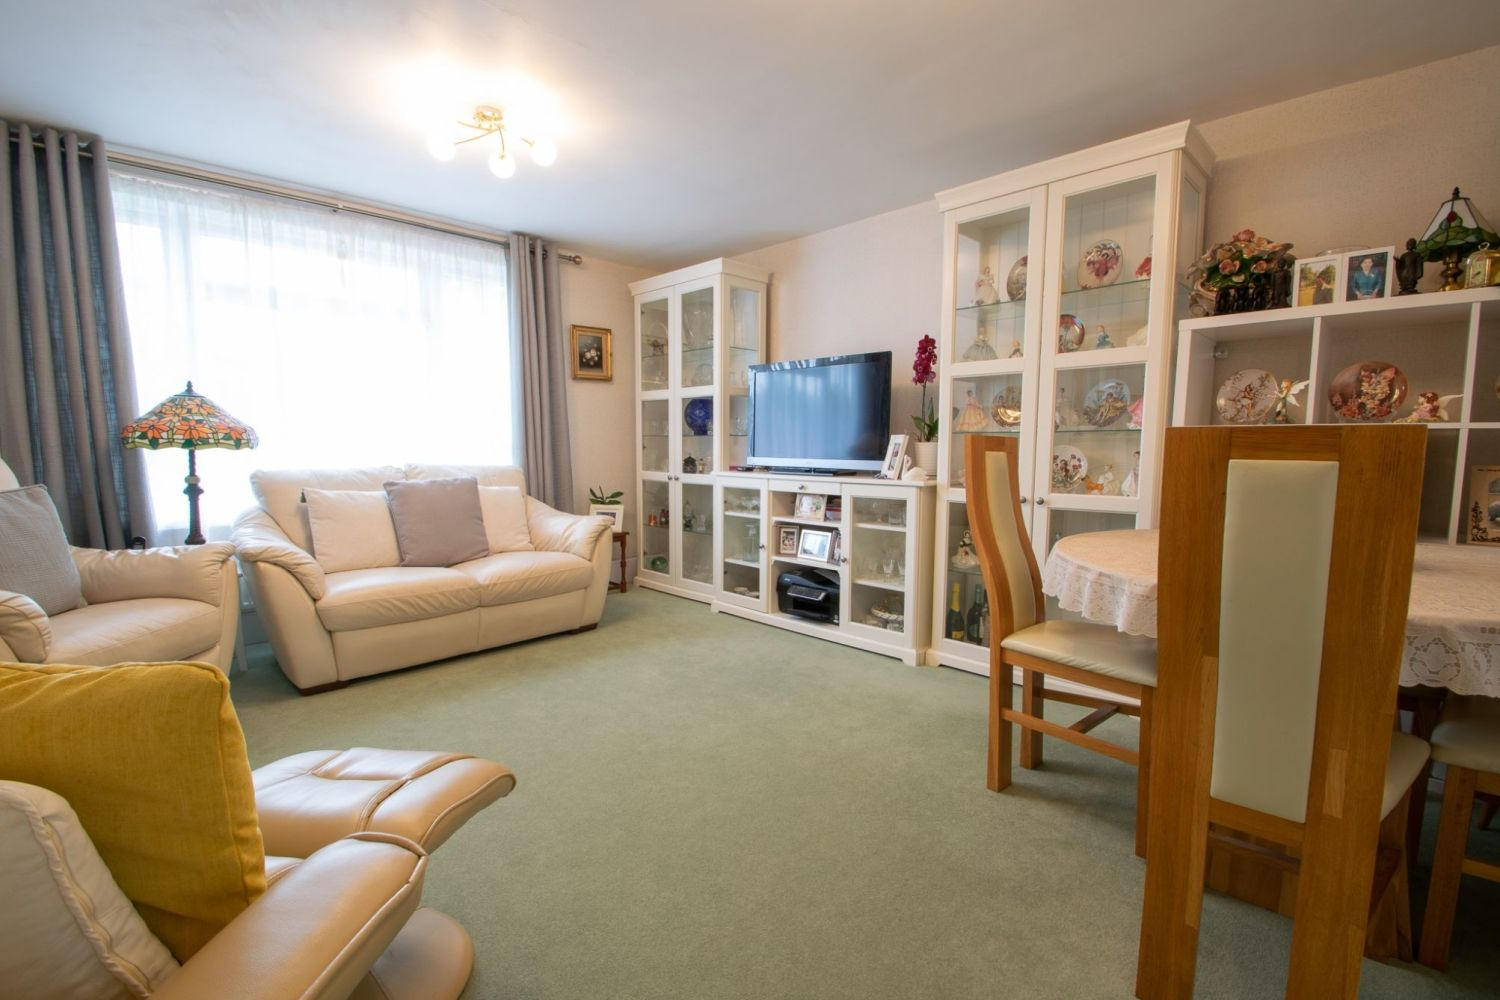 2 bed flat for sale in Enville Street, Stourbridge Central  - Property Image 2